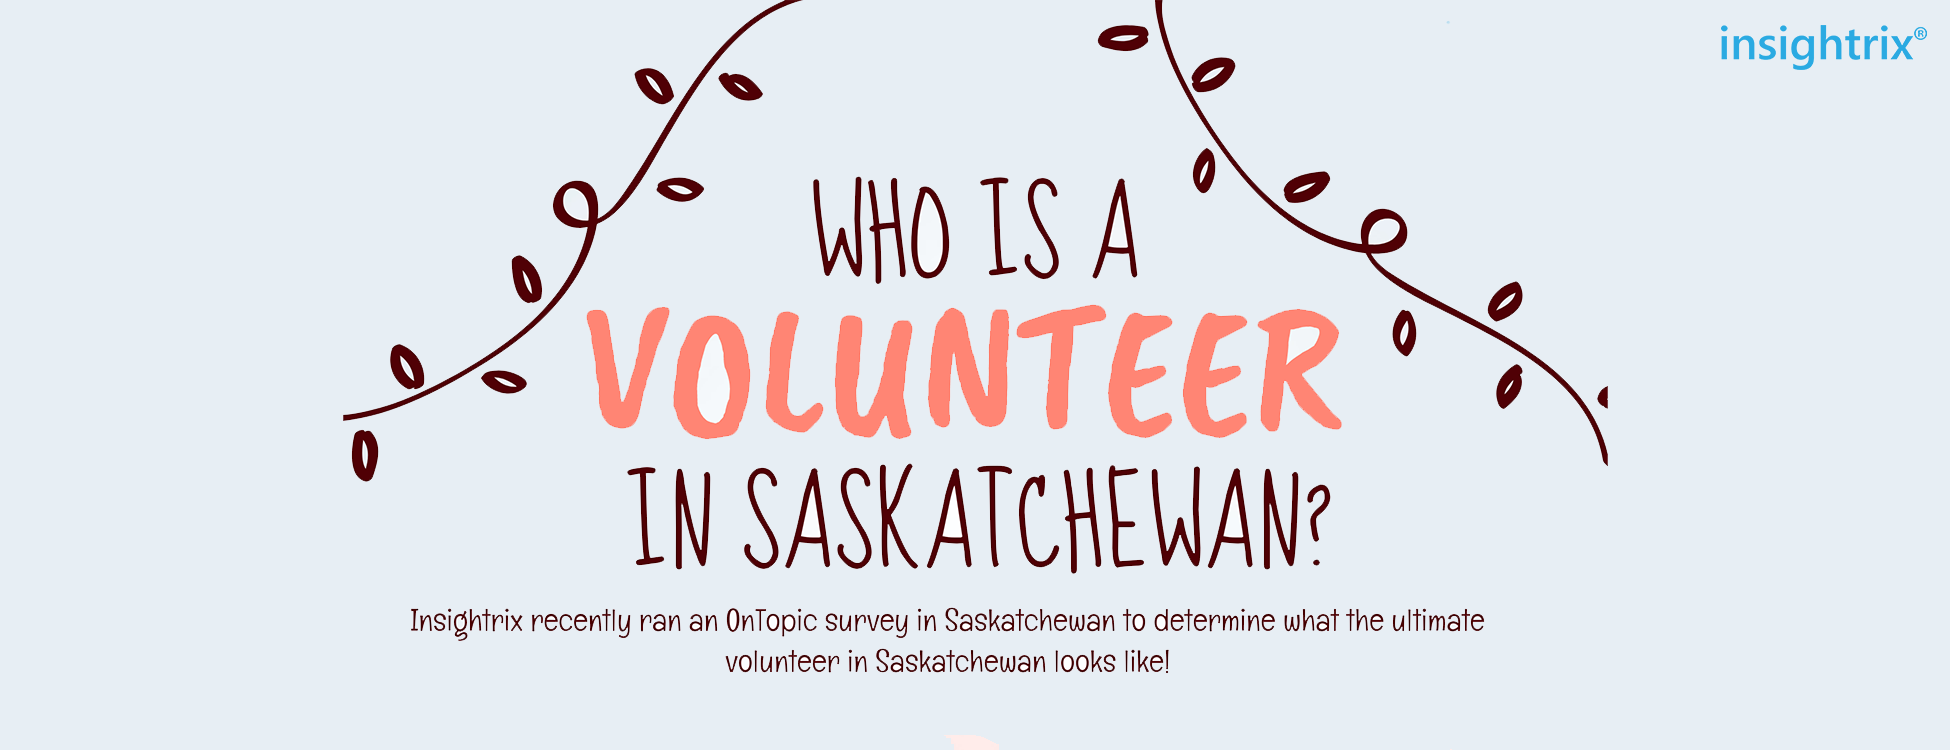 Volunteer & Charitable Activity, Charity, Saskatchewan, Insightrix Research